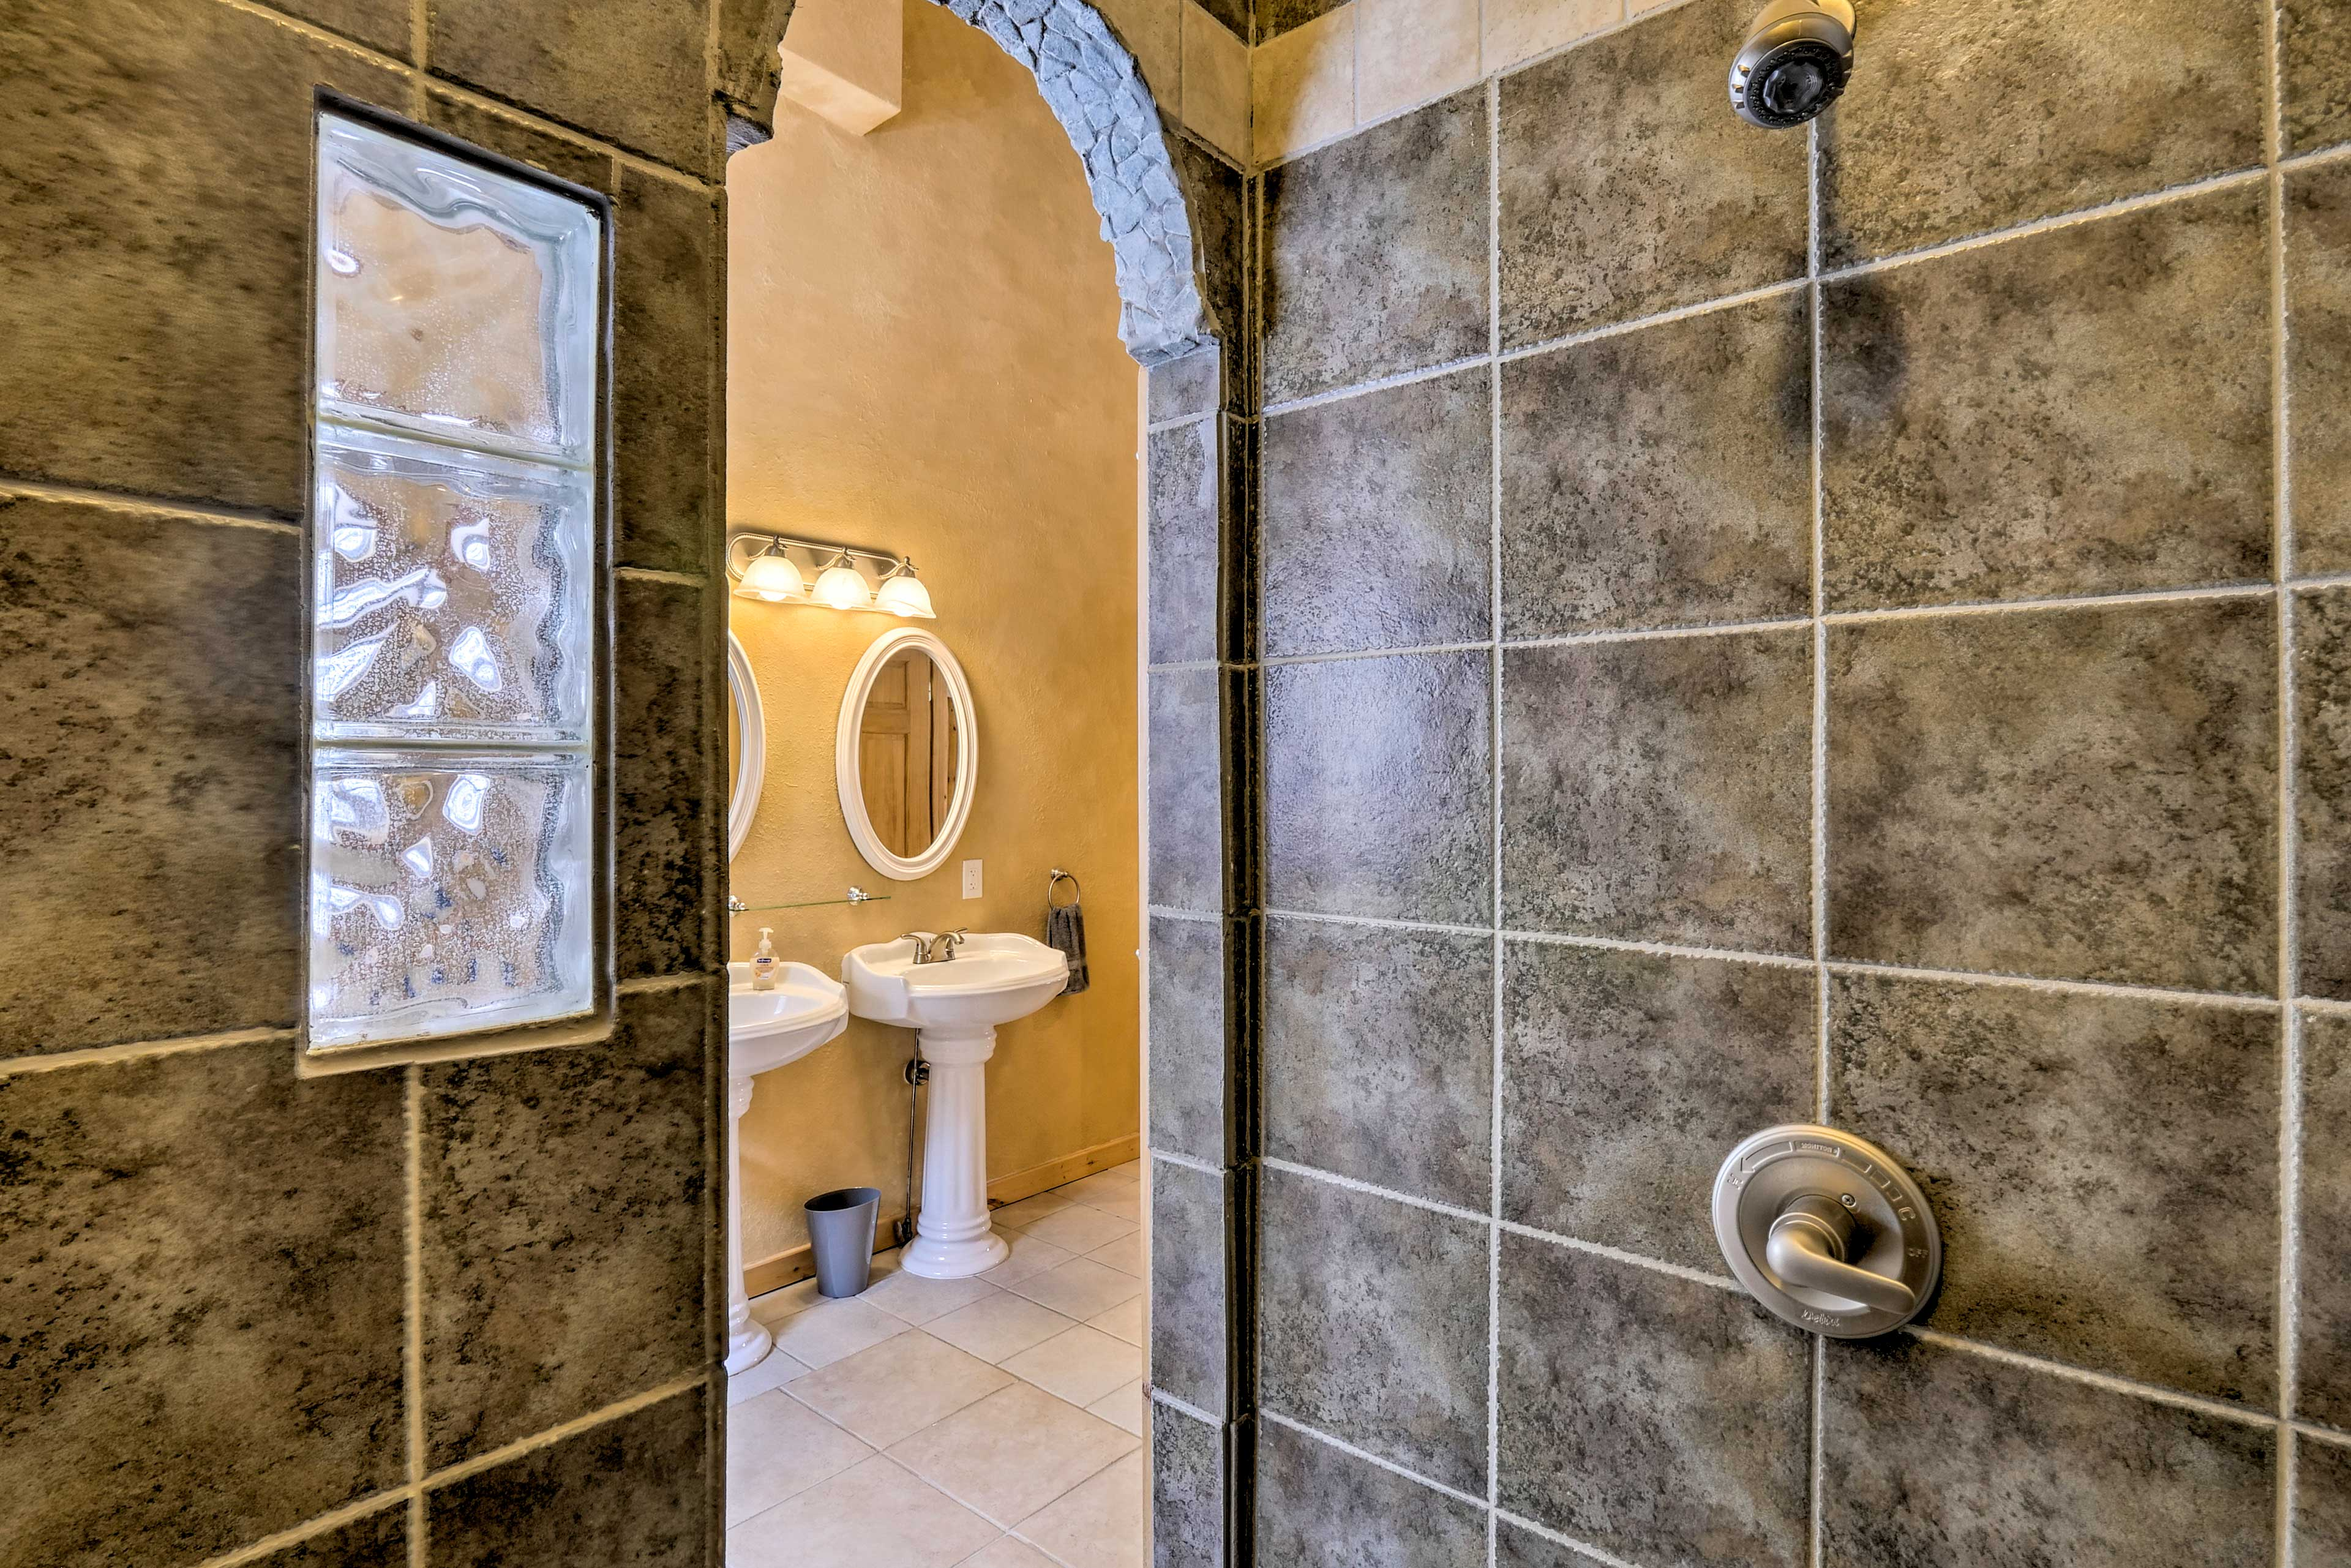 This unique tile shower will be a welcome start to your day.